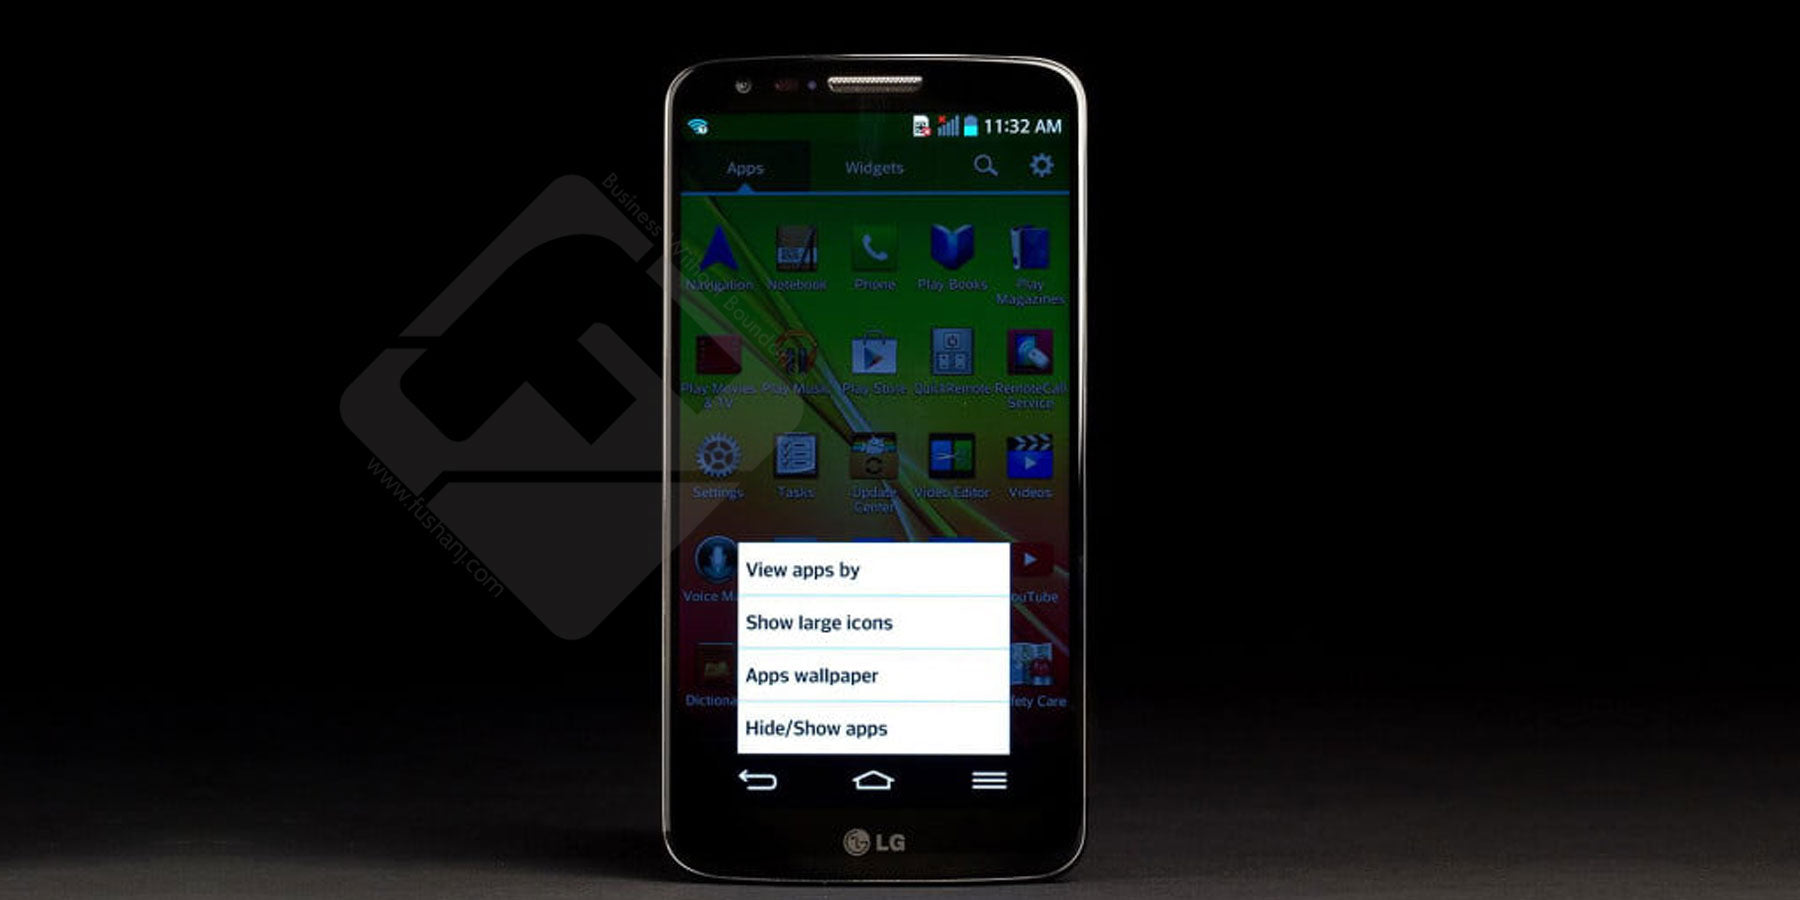 lg-g2-mobile-dubai-berst-price-back-key-plug-sim-size-display-battery-screen